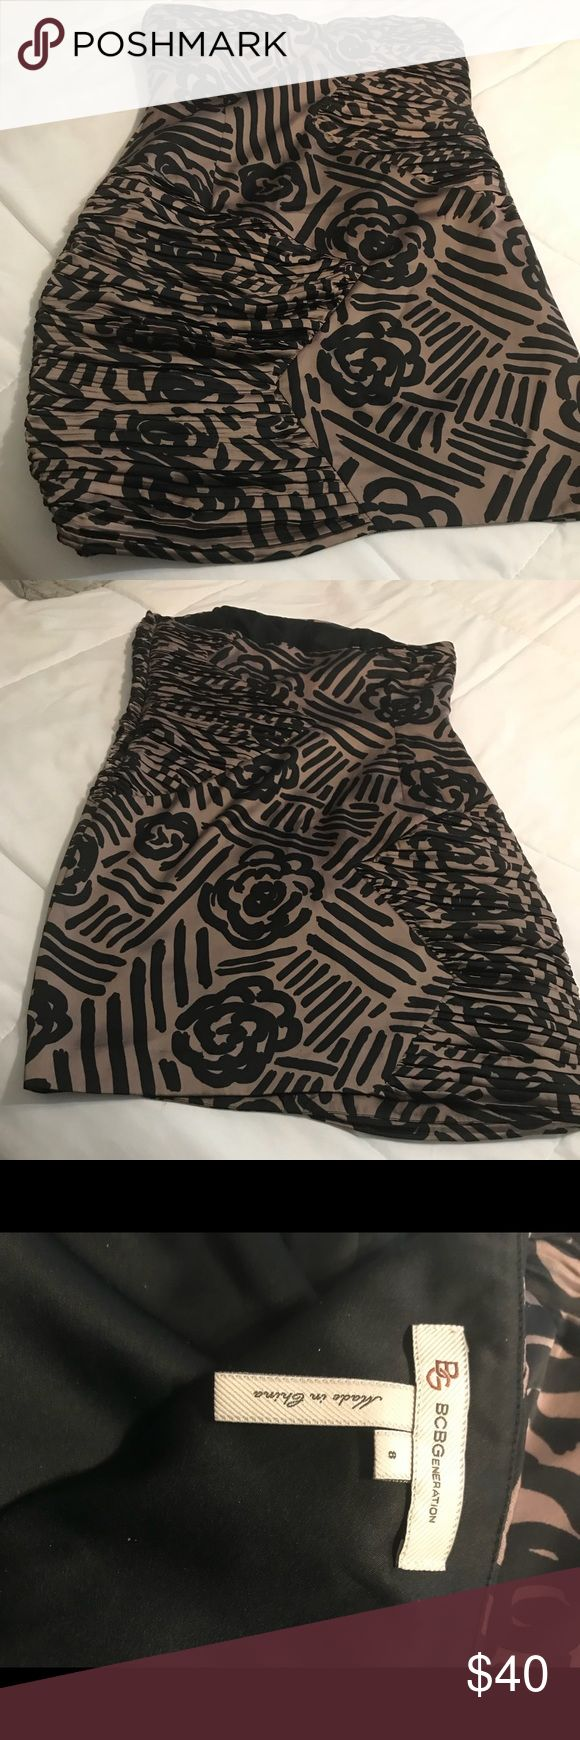 BCBGeneration Dress Nice party dress that will fit like a glove hiding our love handles! BCBGeneration Dresses Mini